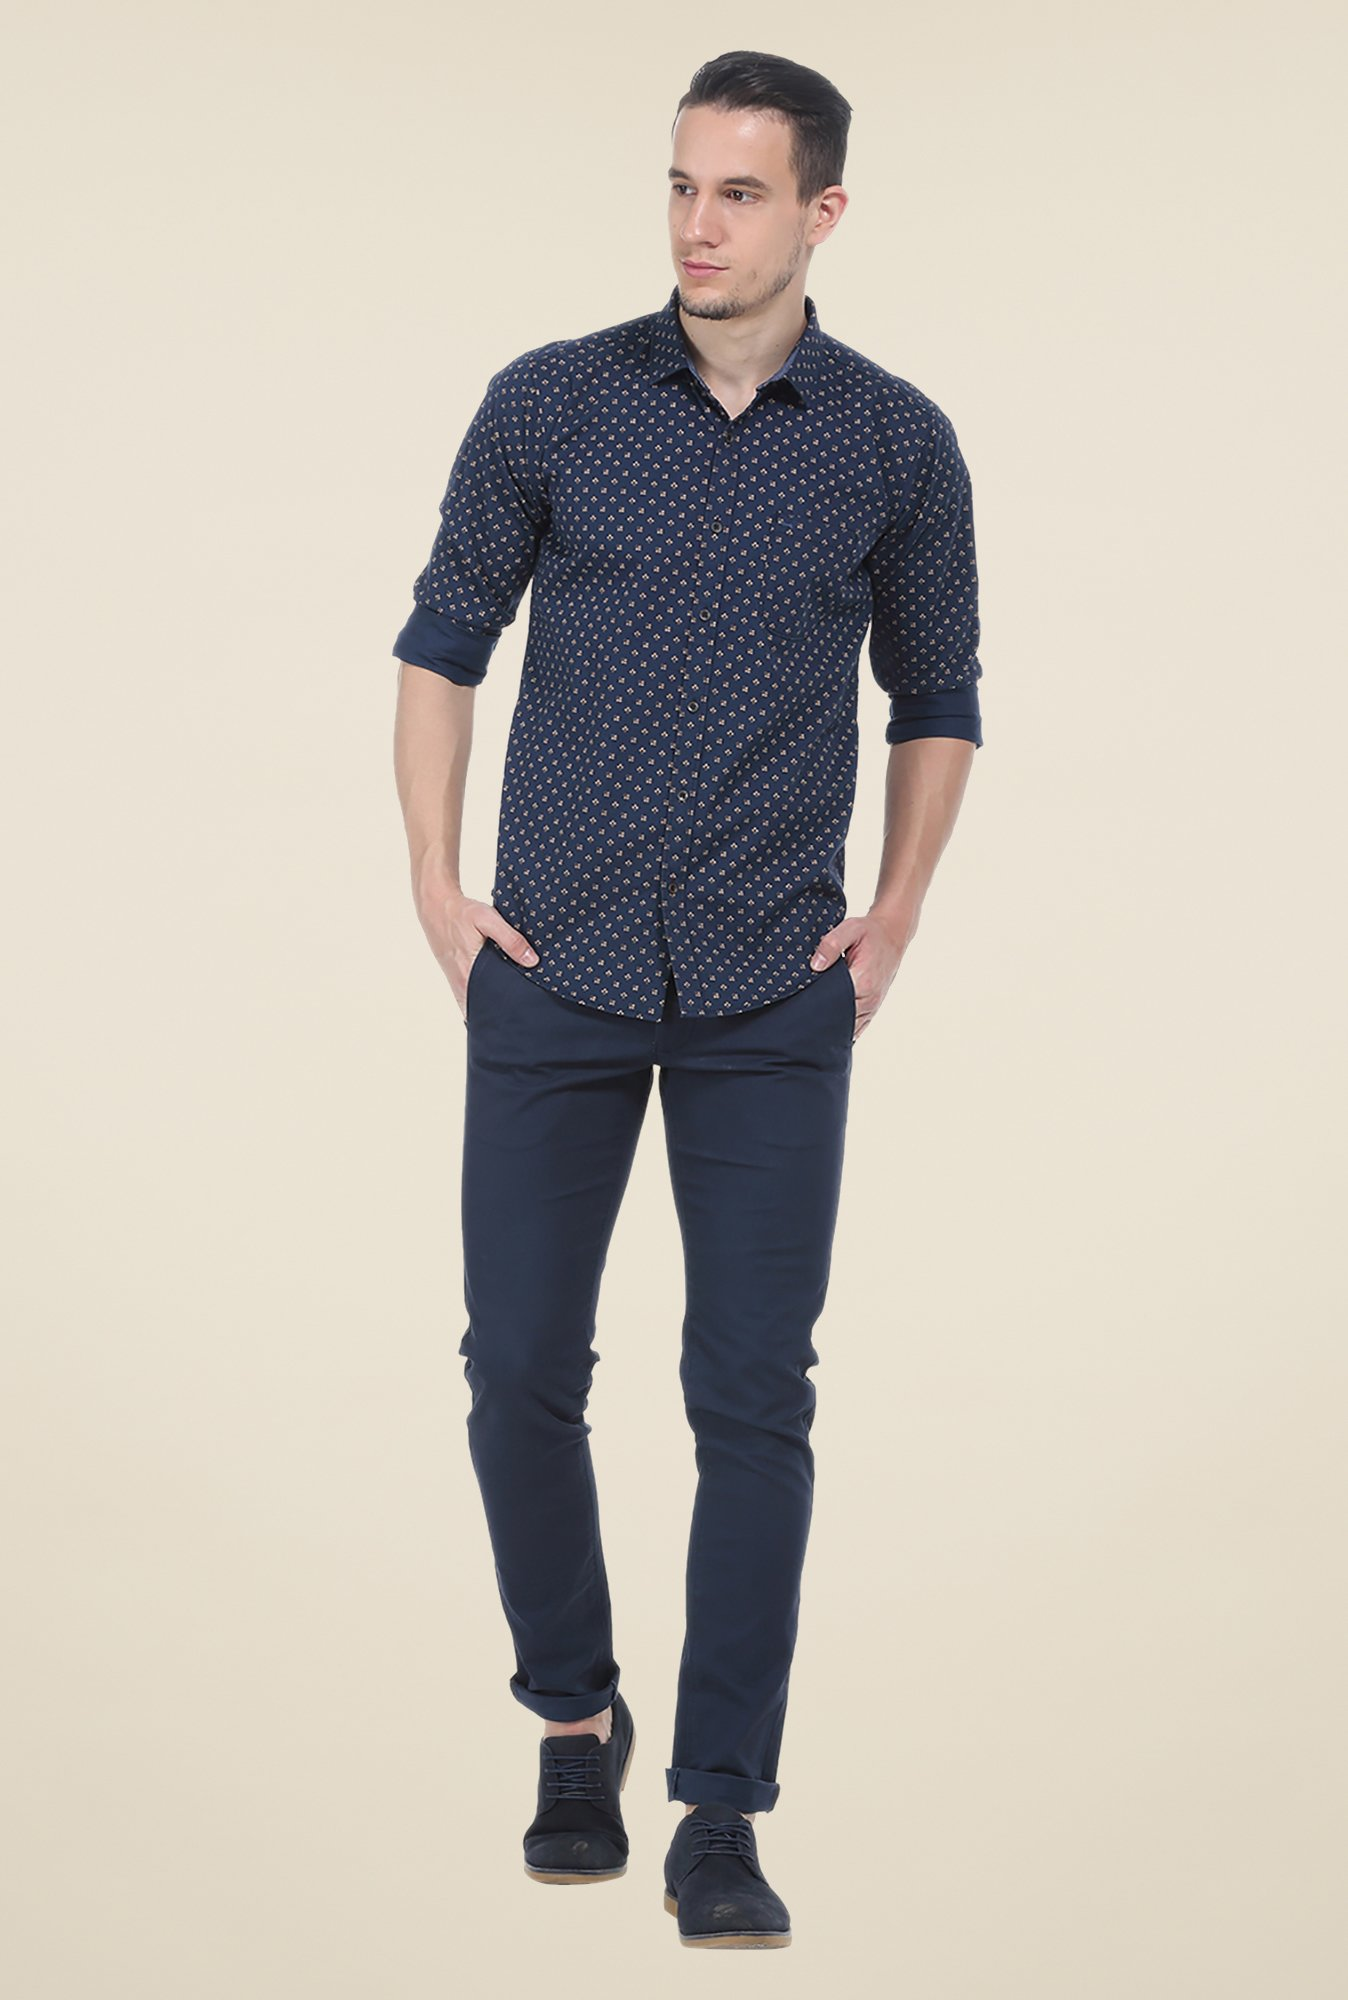 Basics Blue Printed Slim Fit Full Sleeve Shirt